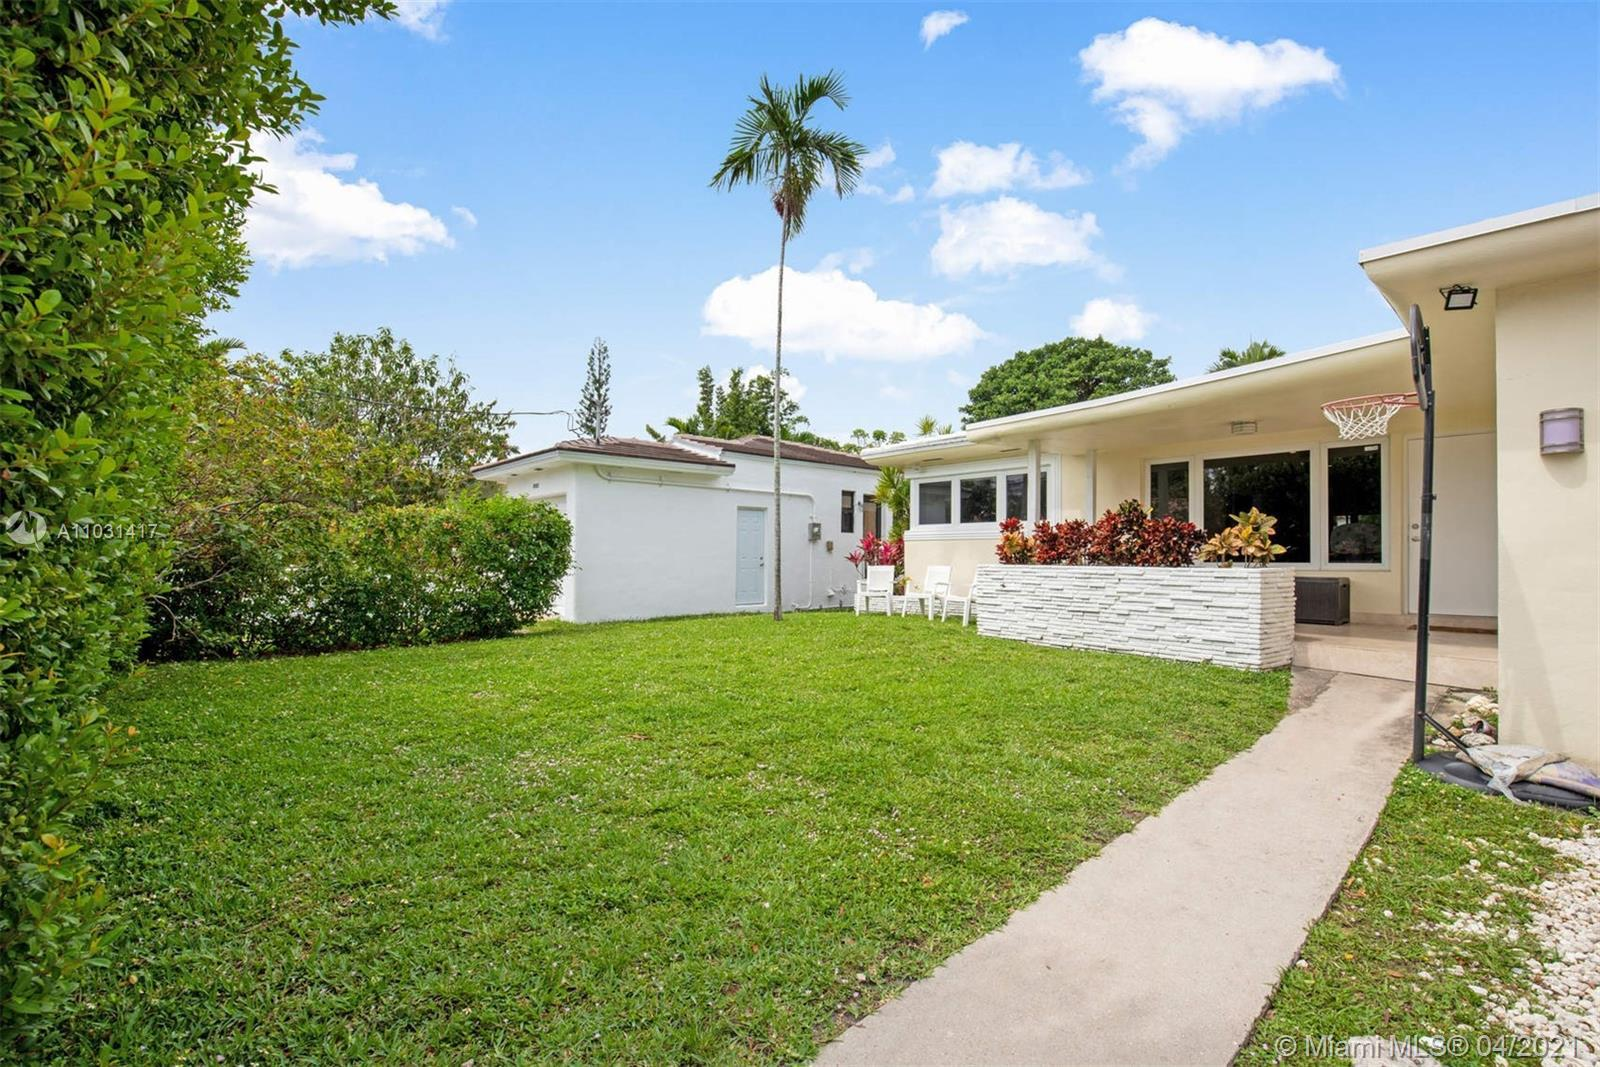 JUST LISTED! An exceptional home in prime Surfside location! 2-3 blocks to the shopping district, th